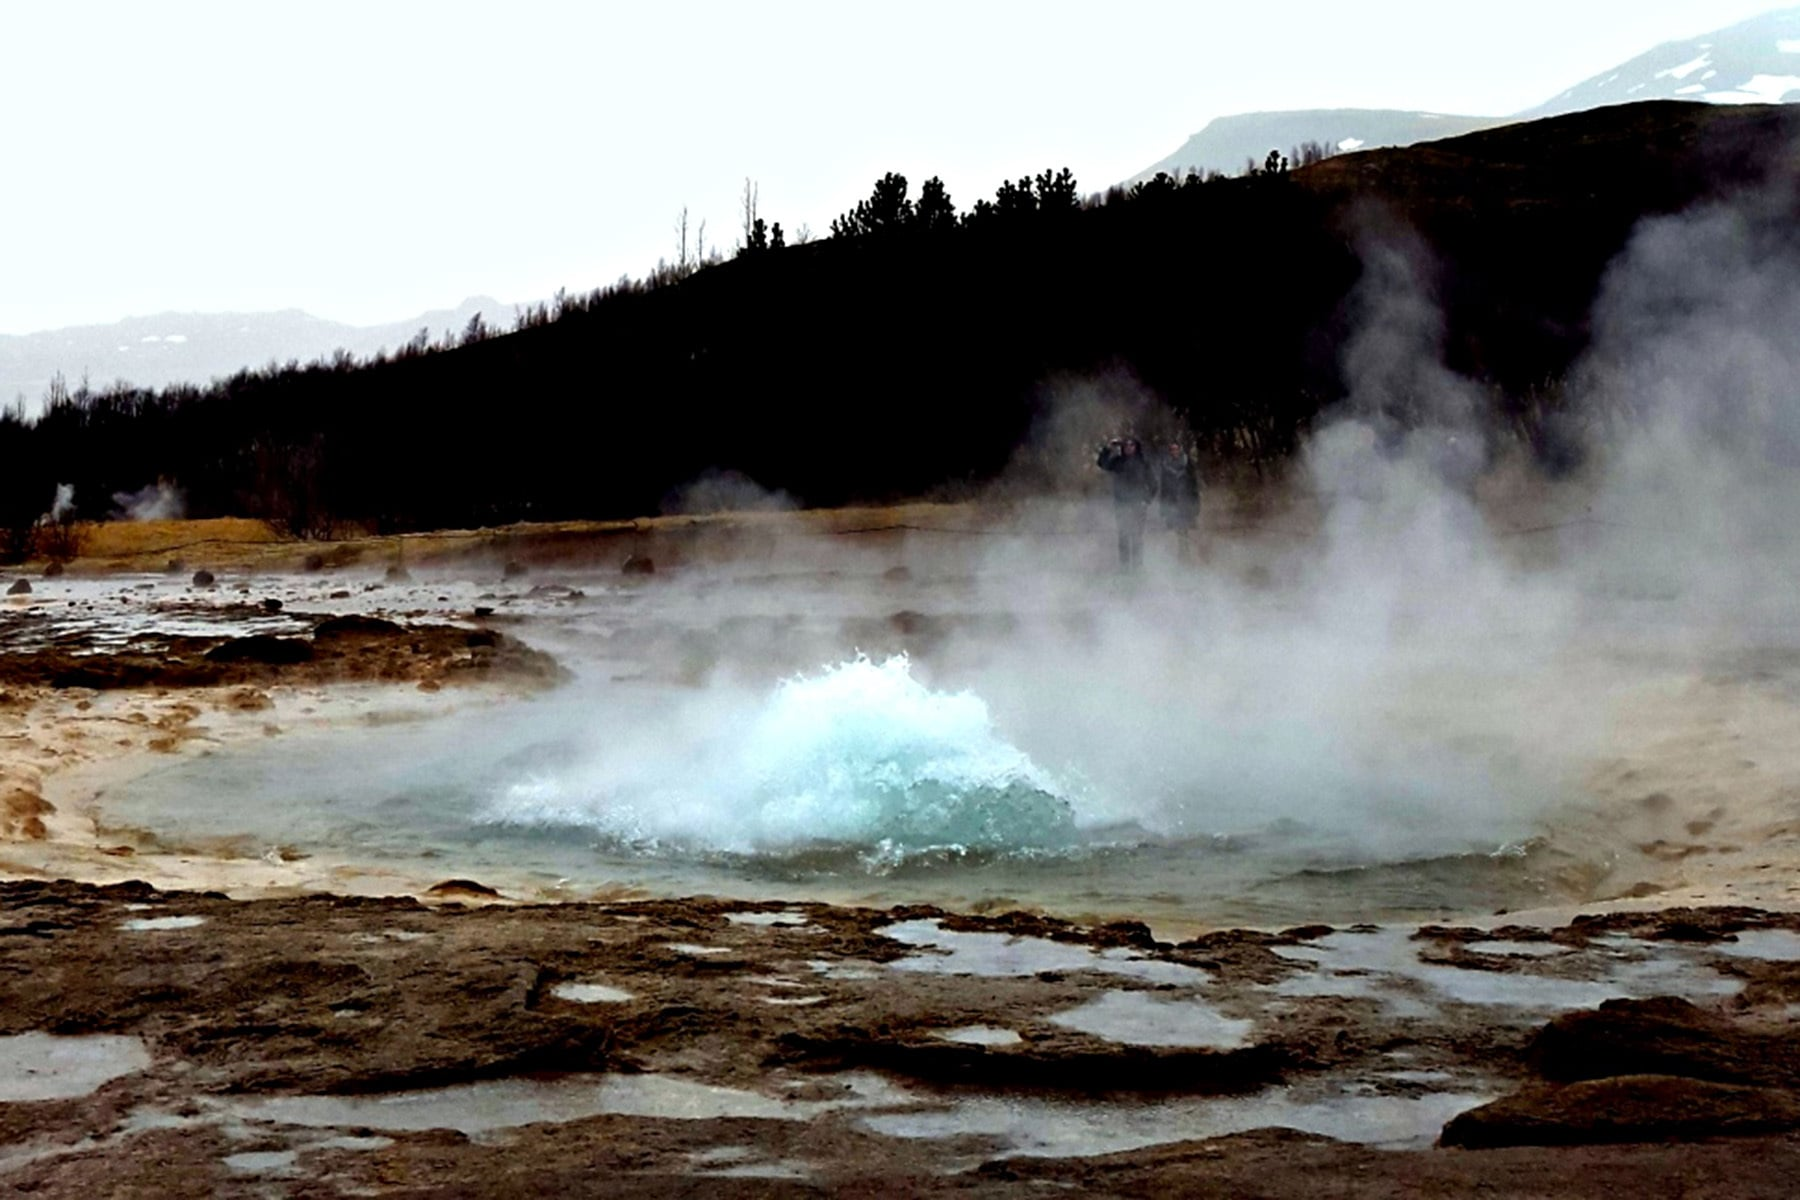 The 'Geysir' is a popular attraction on the Golden Circle.